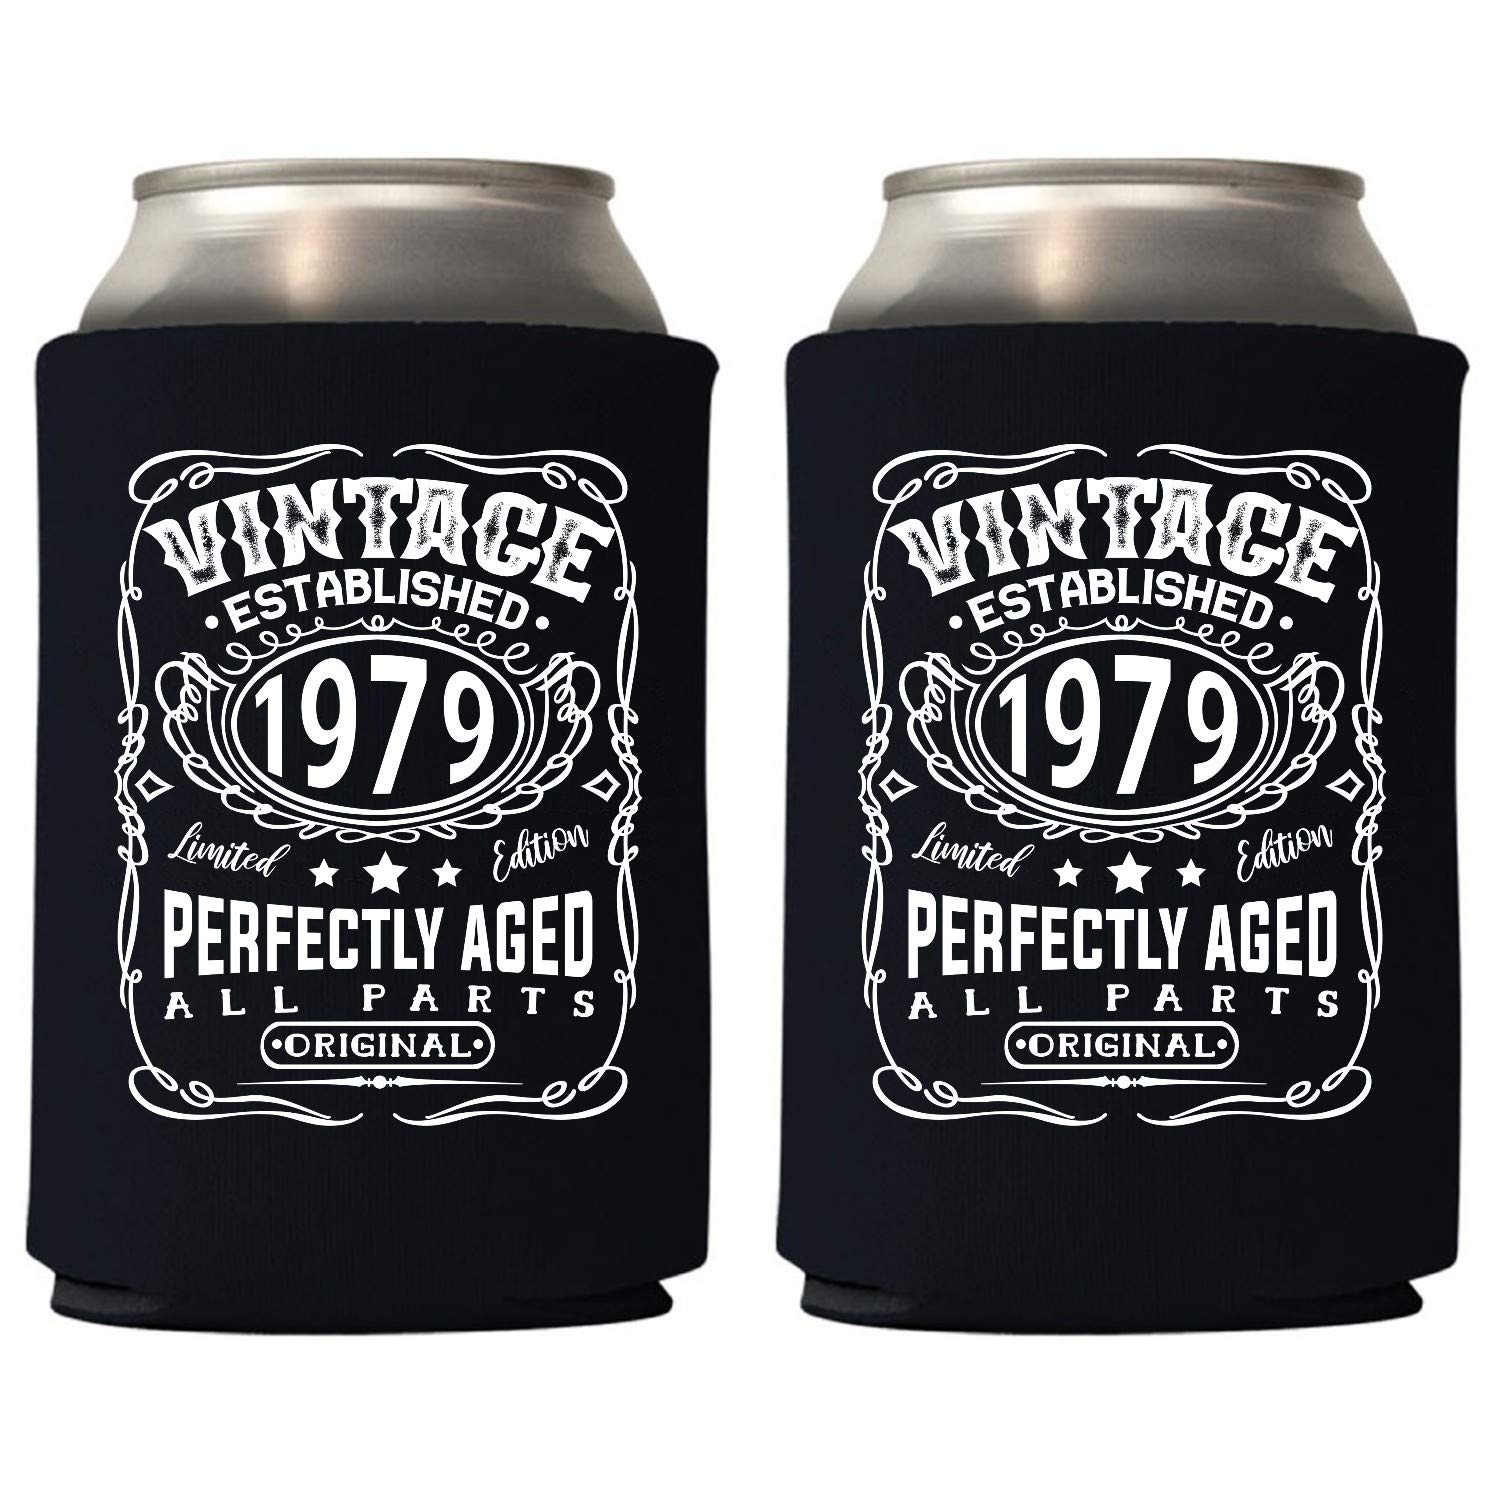 Veracco Vintage Established 1979 Perfectly Aged Can Coolie Holder 40th Birthday Gift Forty and Fabulous Party Favors Decorations (48, Blk, 1979) by Veracco